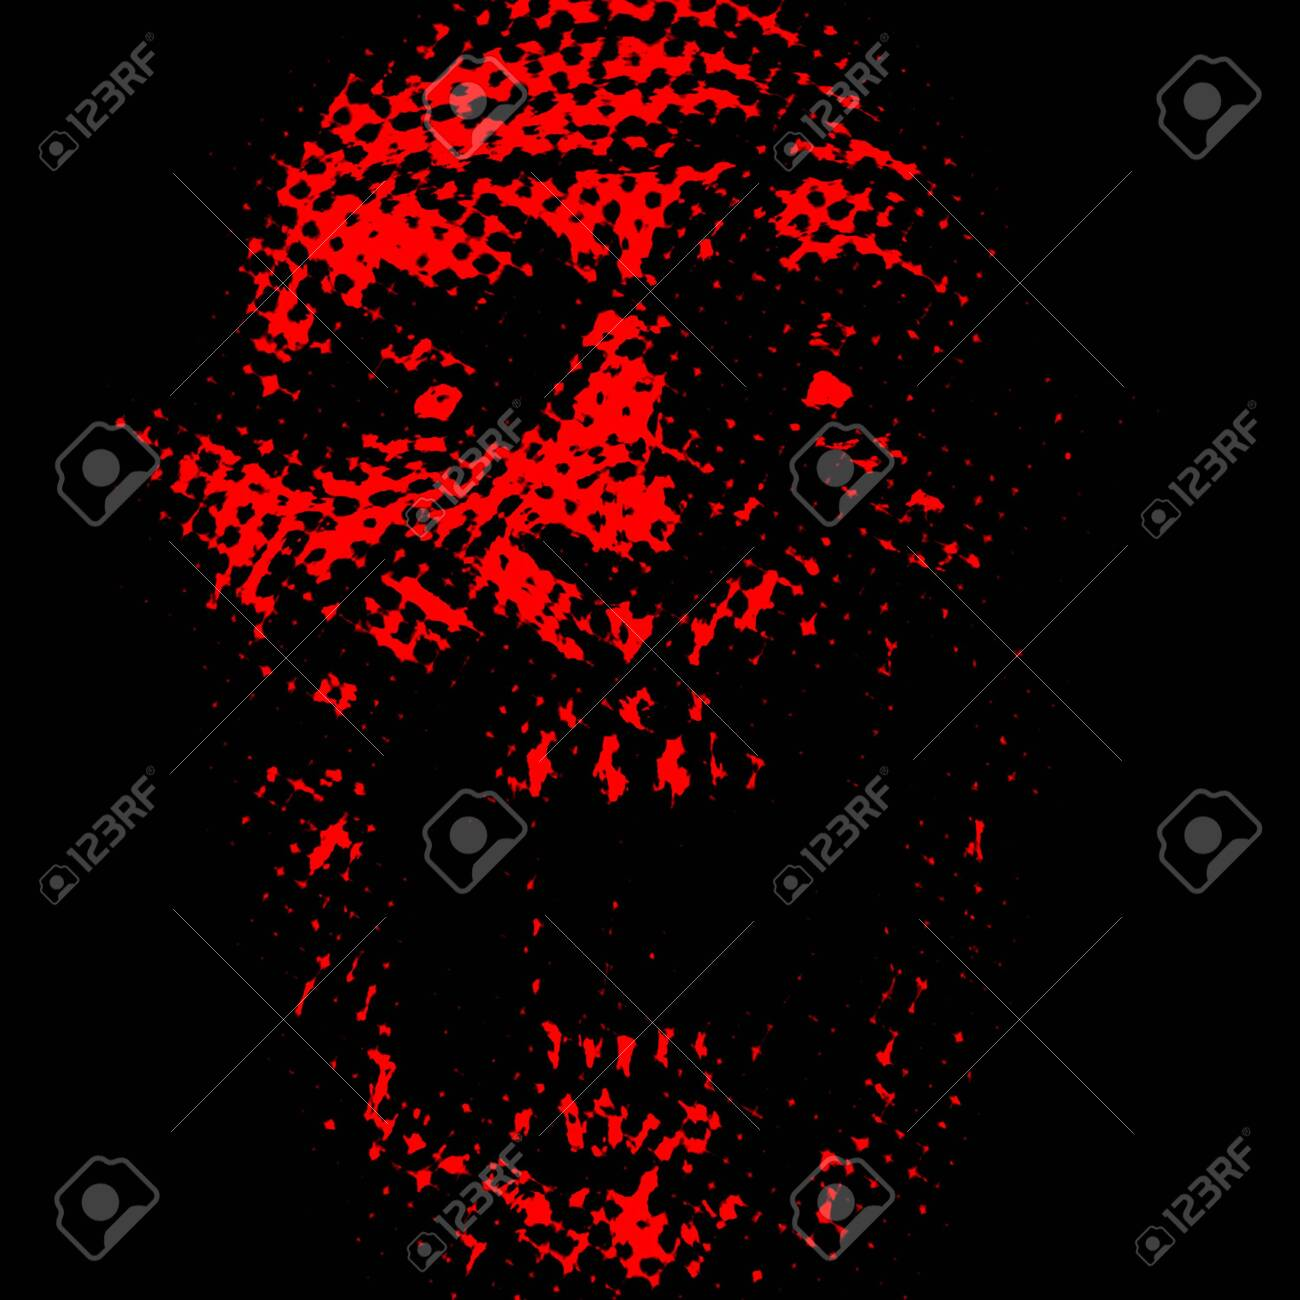 121640348 abstraction zombie face on black background red color illustration in horror genre scary monster cha